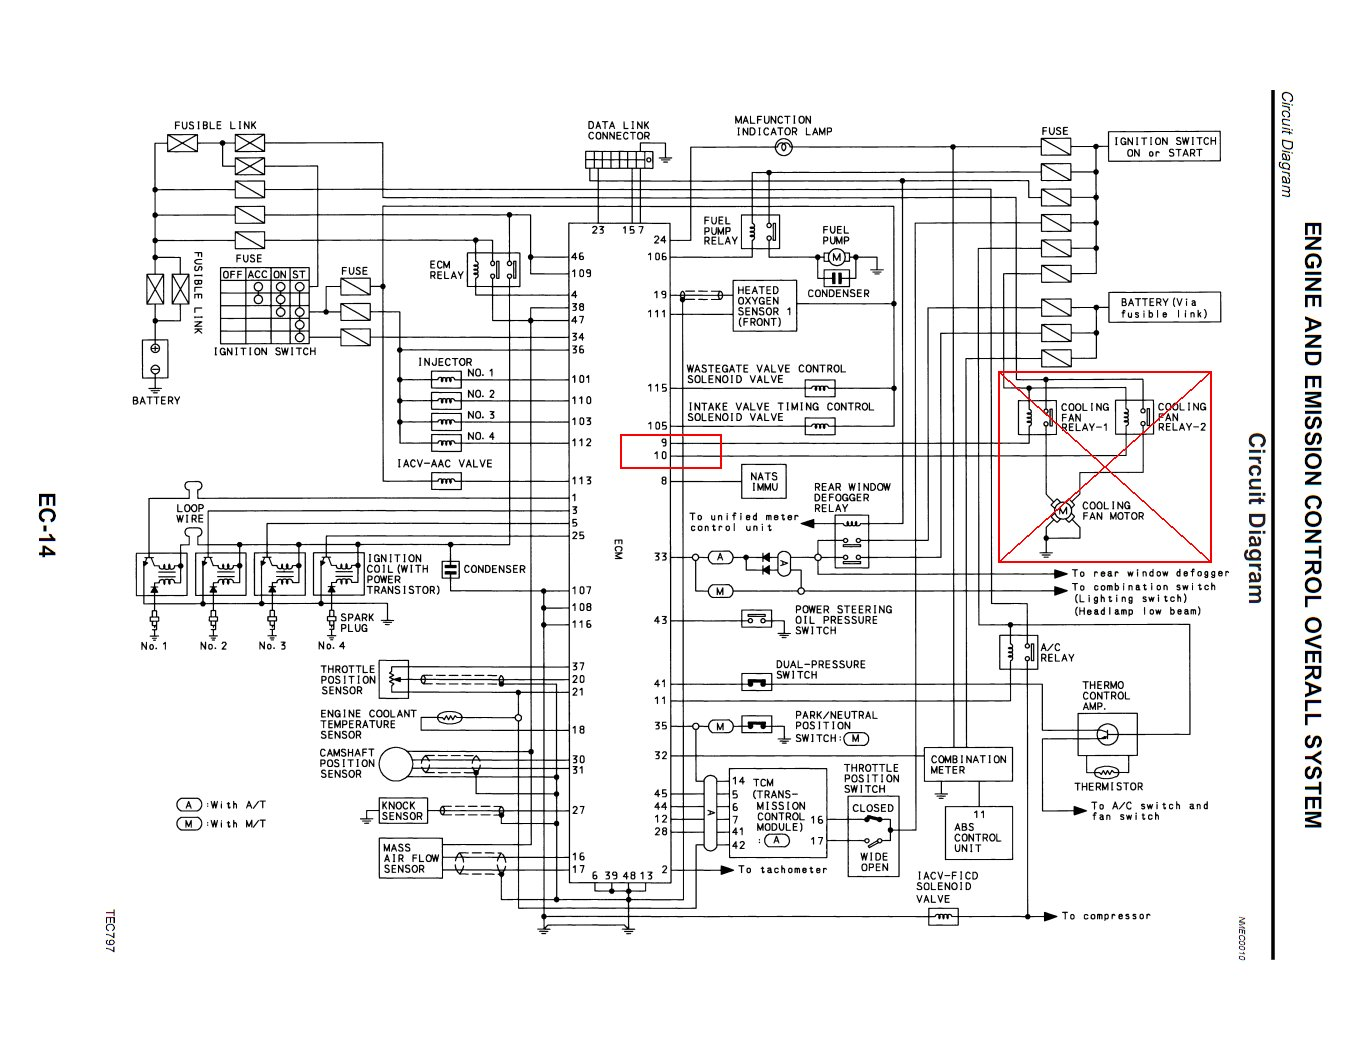 Ecu Fuse Diagram Ecu Pinout Diagram Ecu Image Wiring Diagram Opel Vectra B Wiring Diagram Wiring